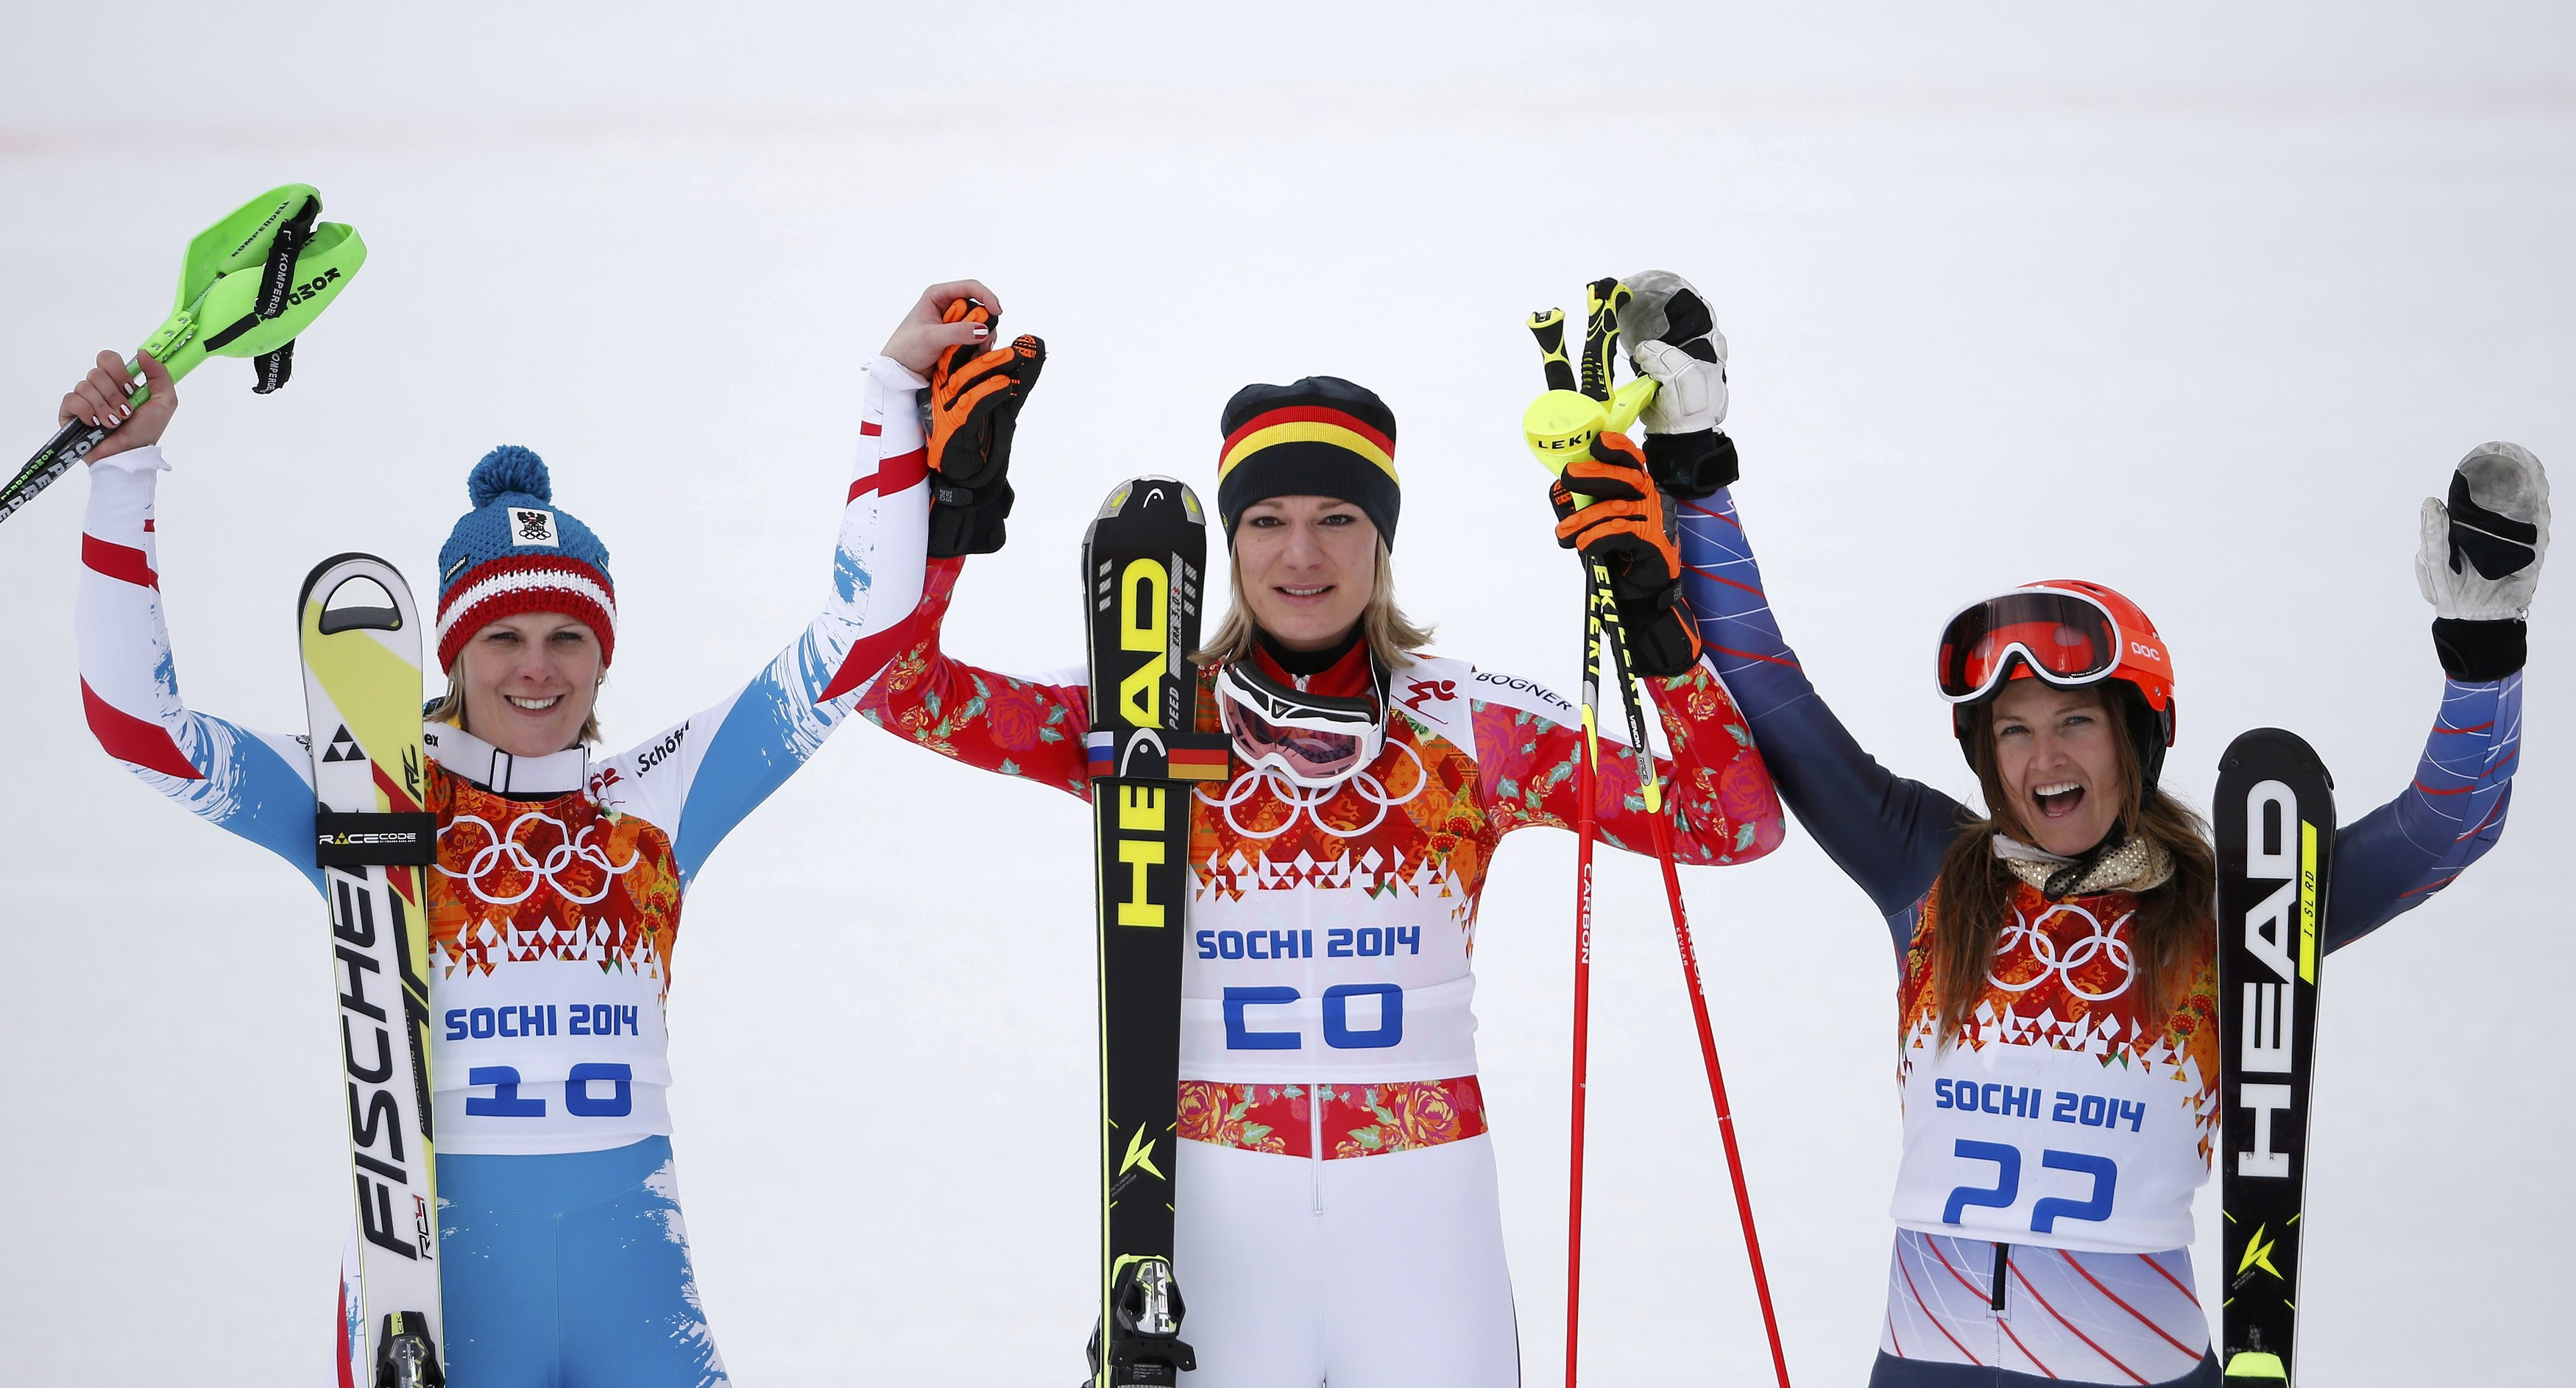 Winners_of_the_competition_in_alpine_skiing_at_the_Women_s_Olympic_Games_in_Sochi_065466_